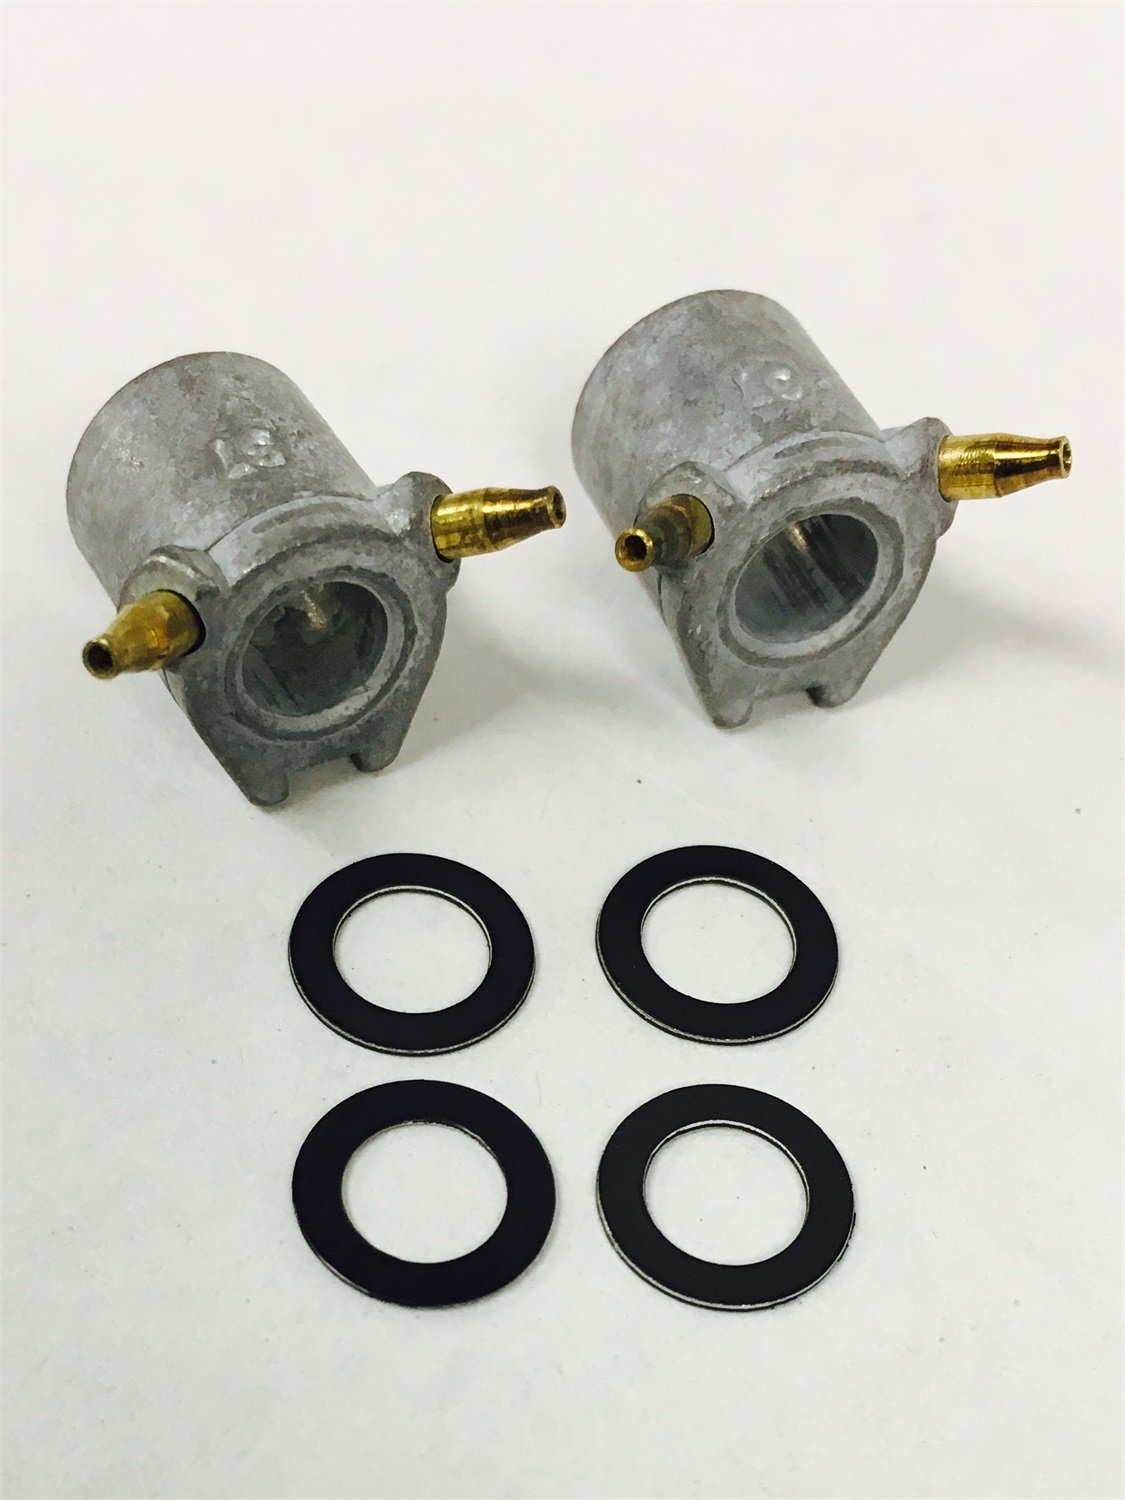 Holley Performance 121-37 Accelerator Pump Discharge Nozzle; 0.037 in. Hole Size; Tube Type; Incl. 2 Nozzles/4 Gaskets;